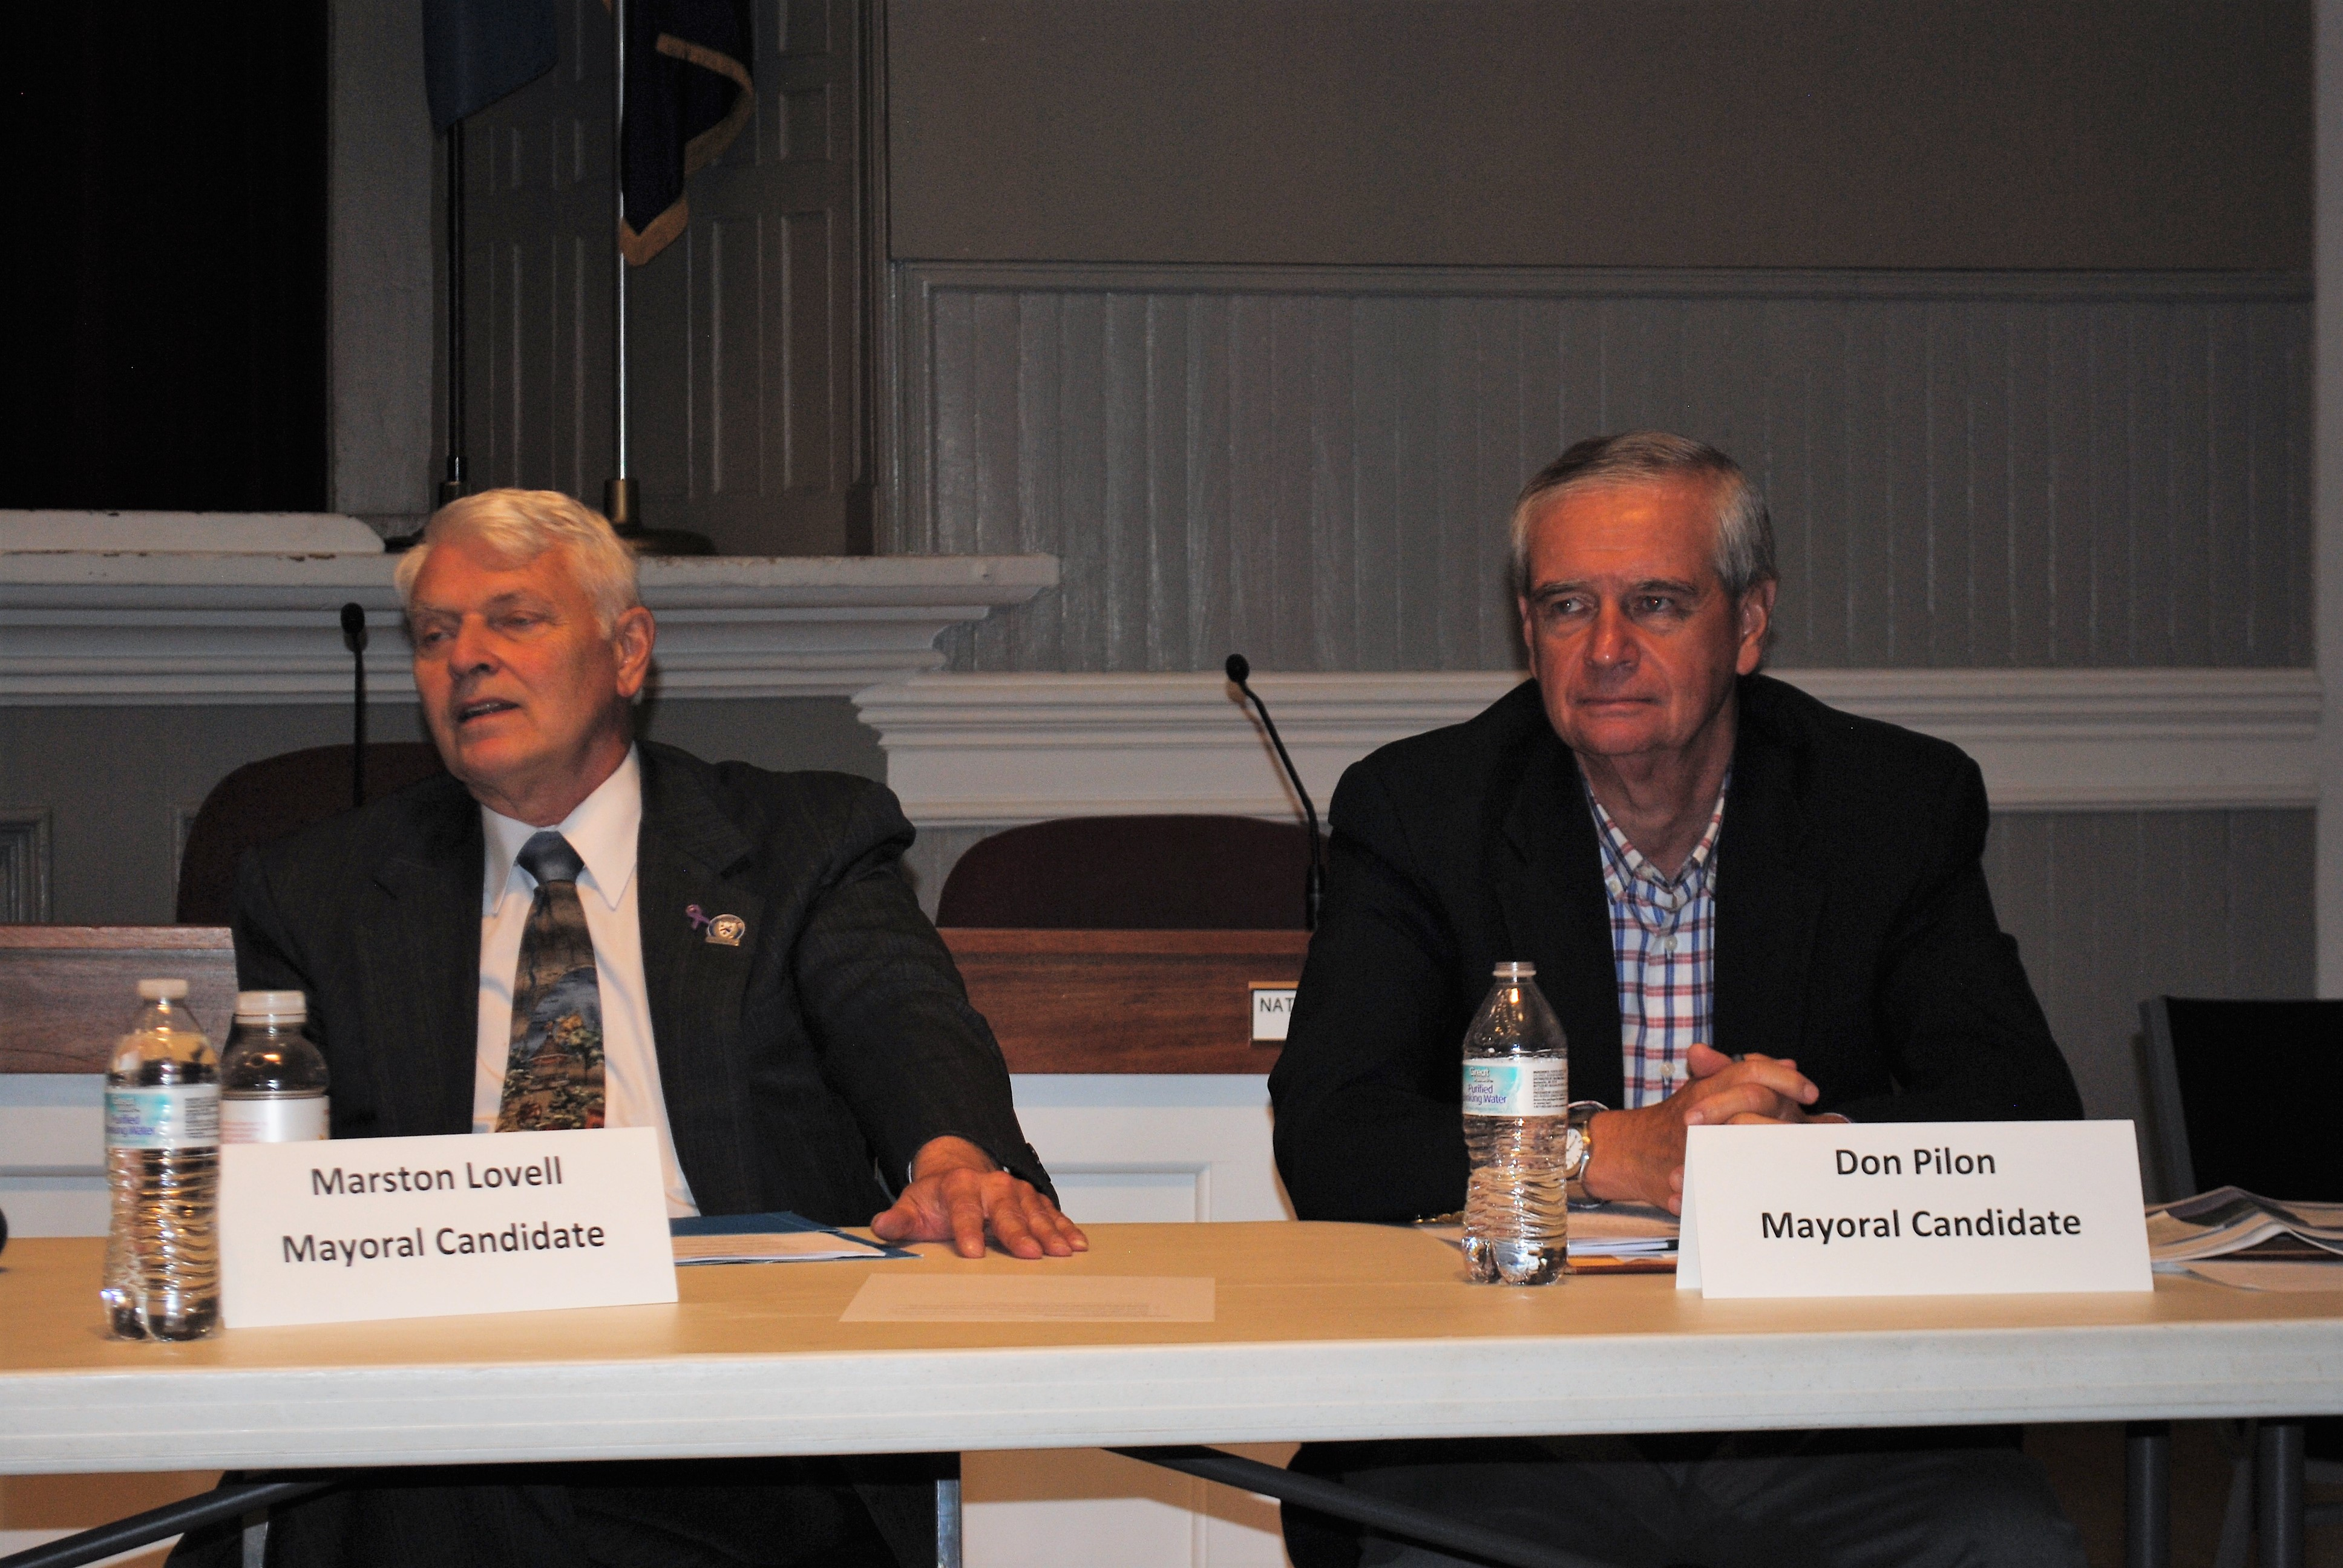 Saco mayoral candidates Marston Lovell and Don Pilon listen to a member of the public speak at a candidate forum Wednesday night at Saco City Hall hosted by Saco Main Street. LIZ GOTTHELF/Journal Tribune